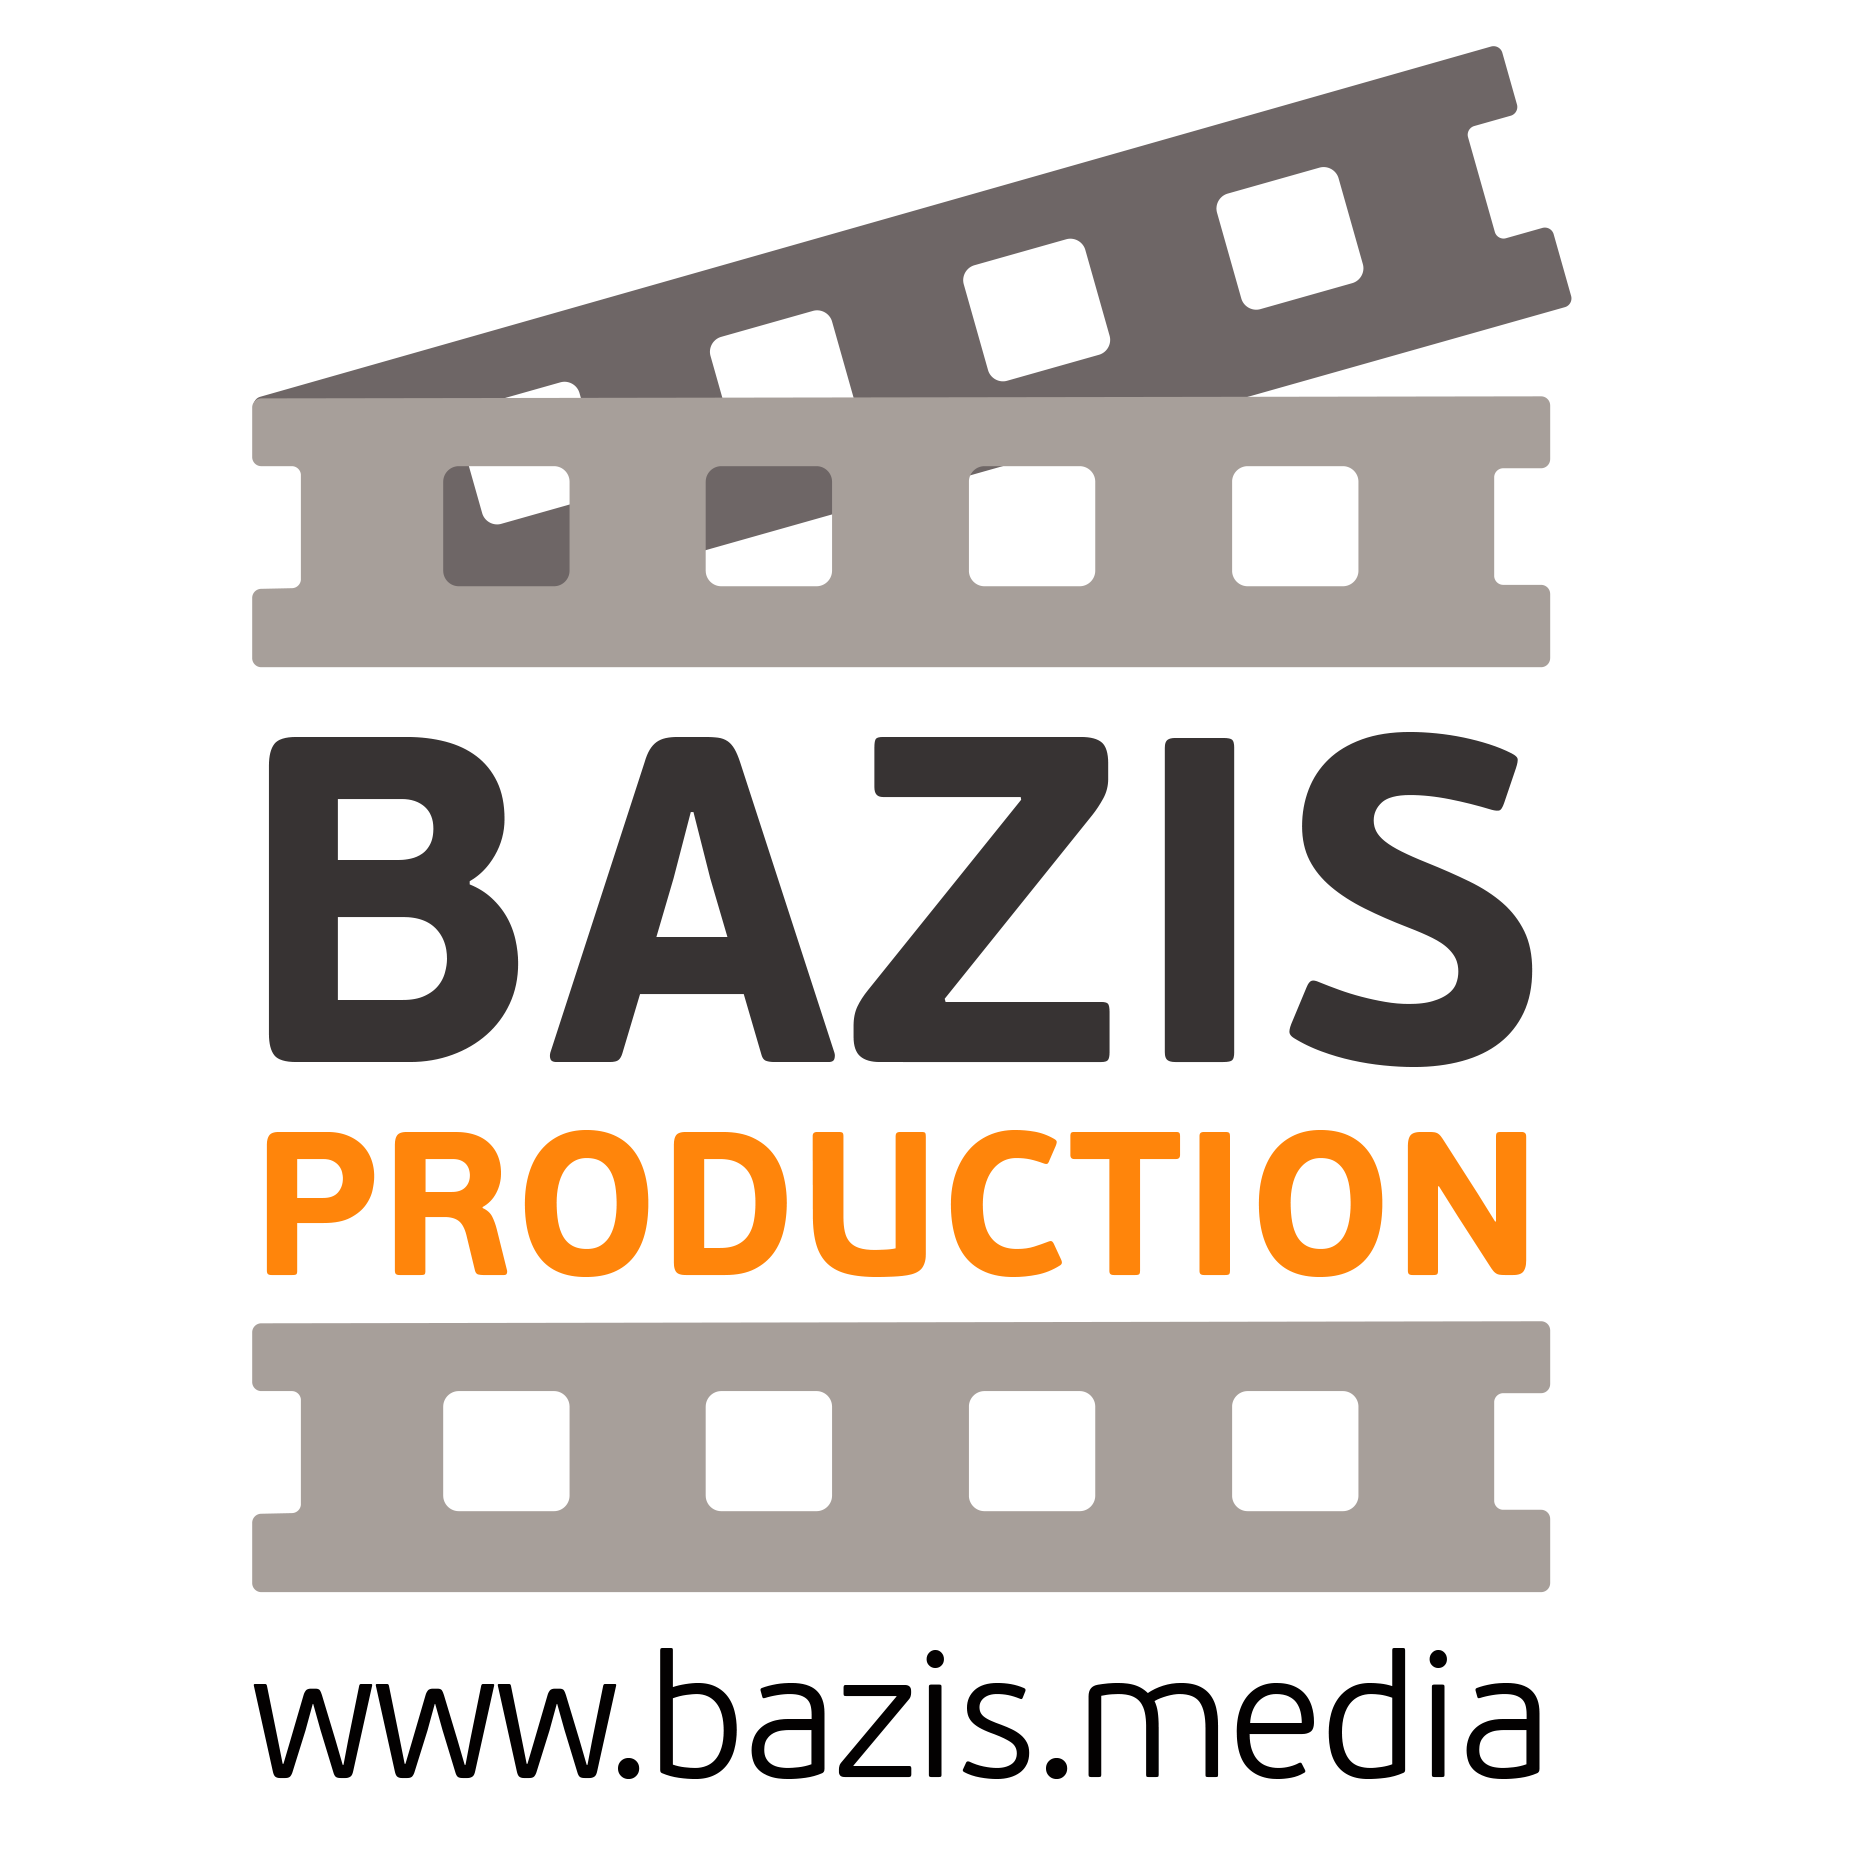 Bazis Production